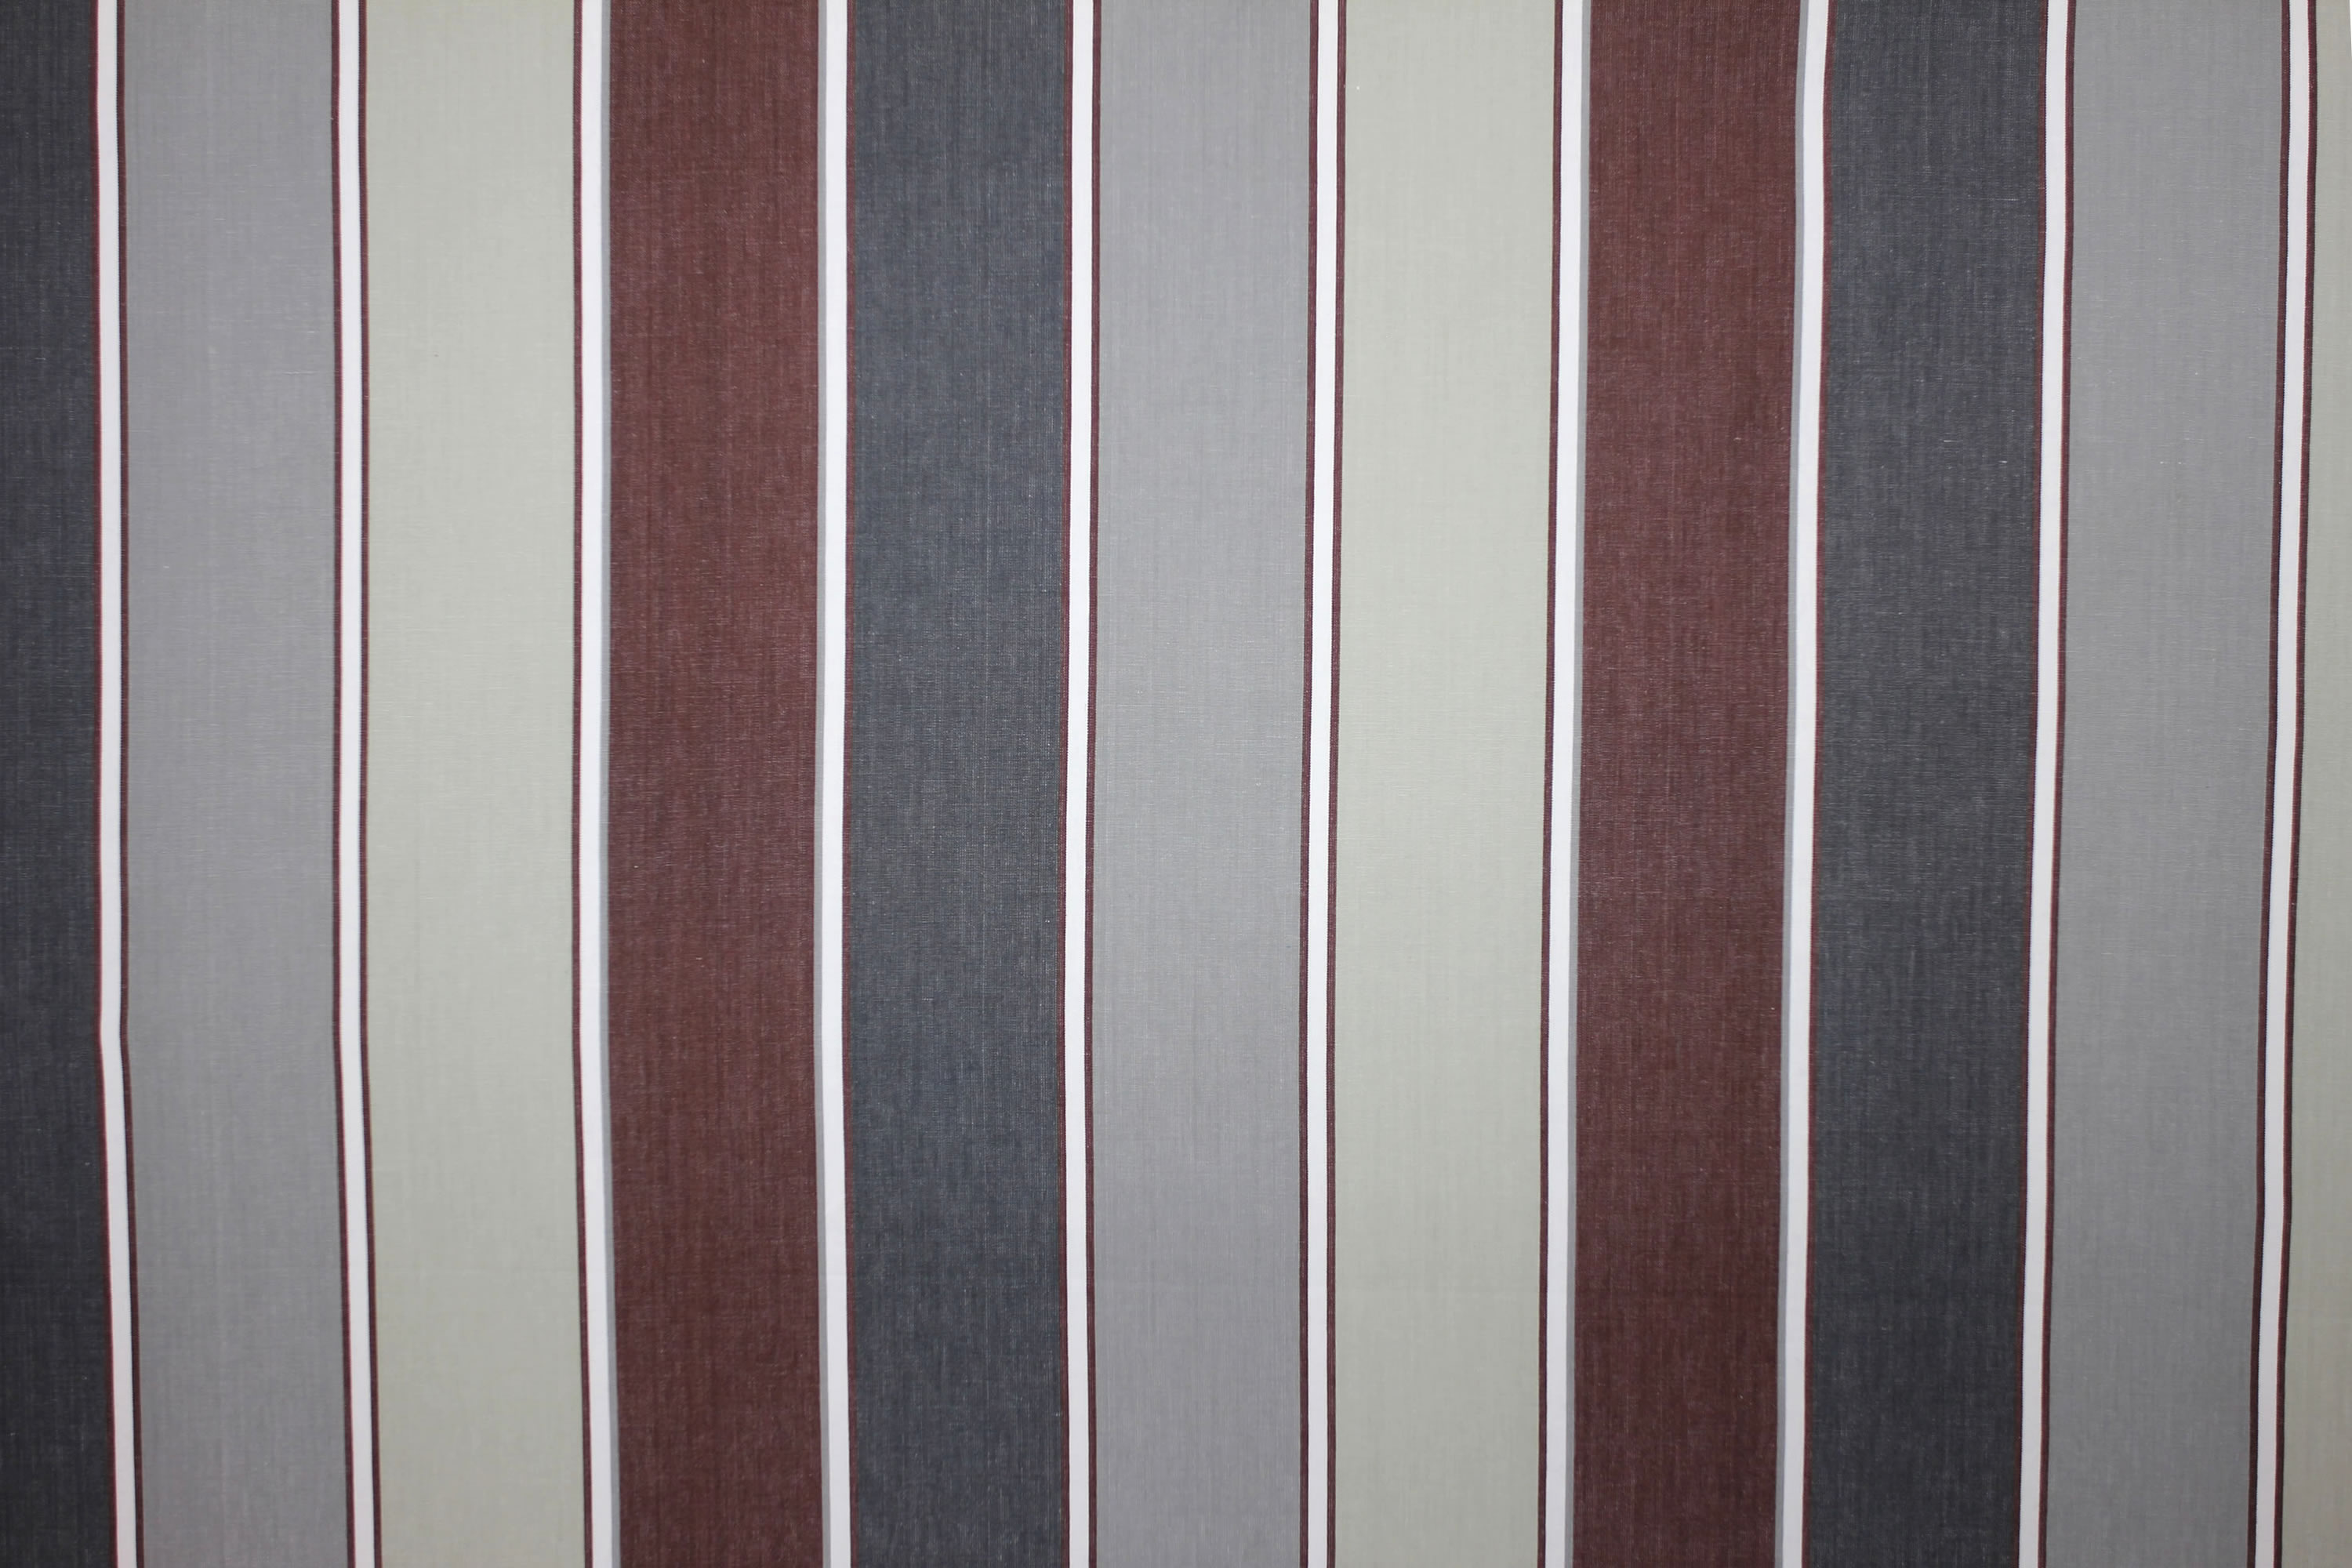 Striped Upholstery Fabric Shades of Grey | Striped Curtain Fabric Greys | Tobogganing Stripe